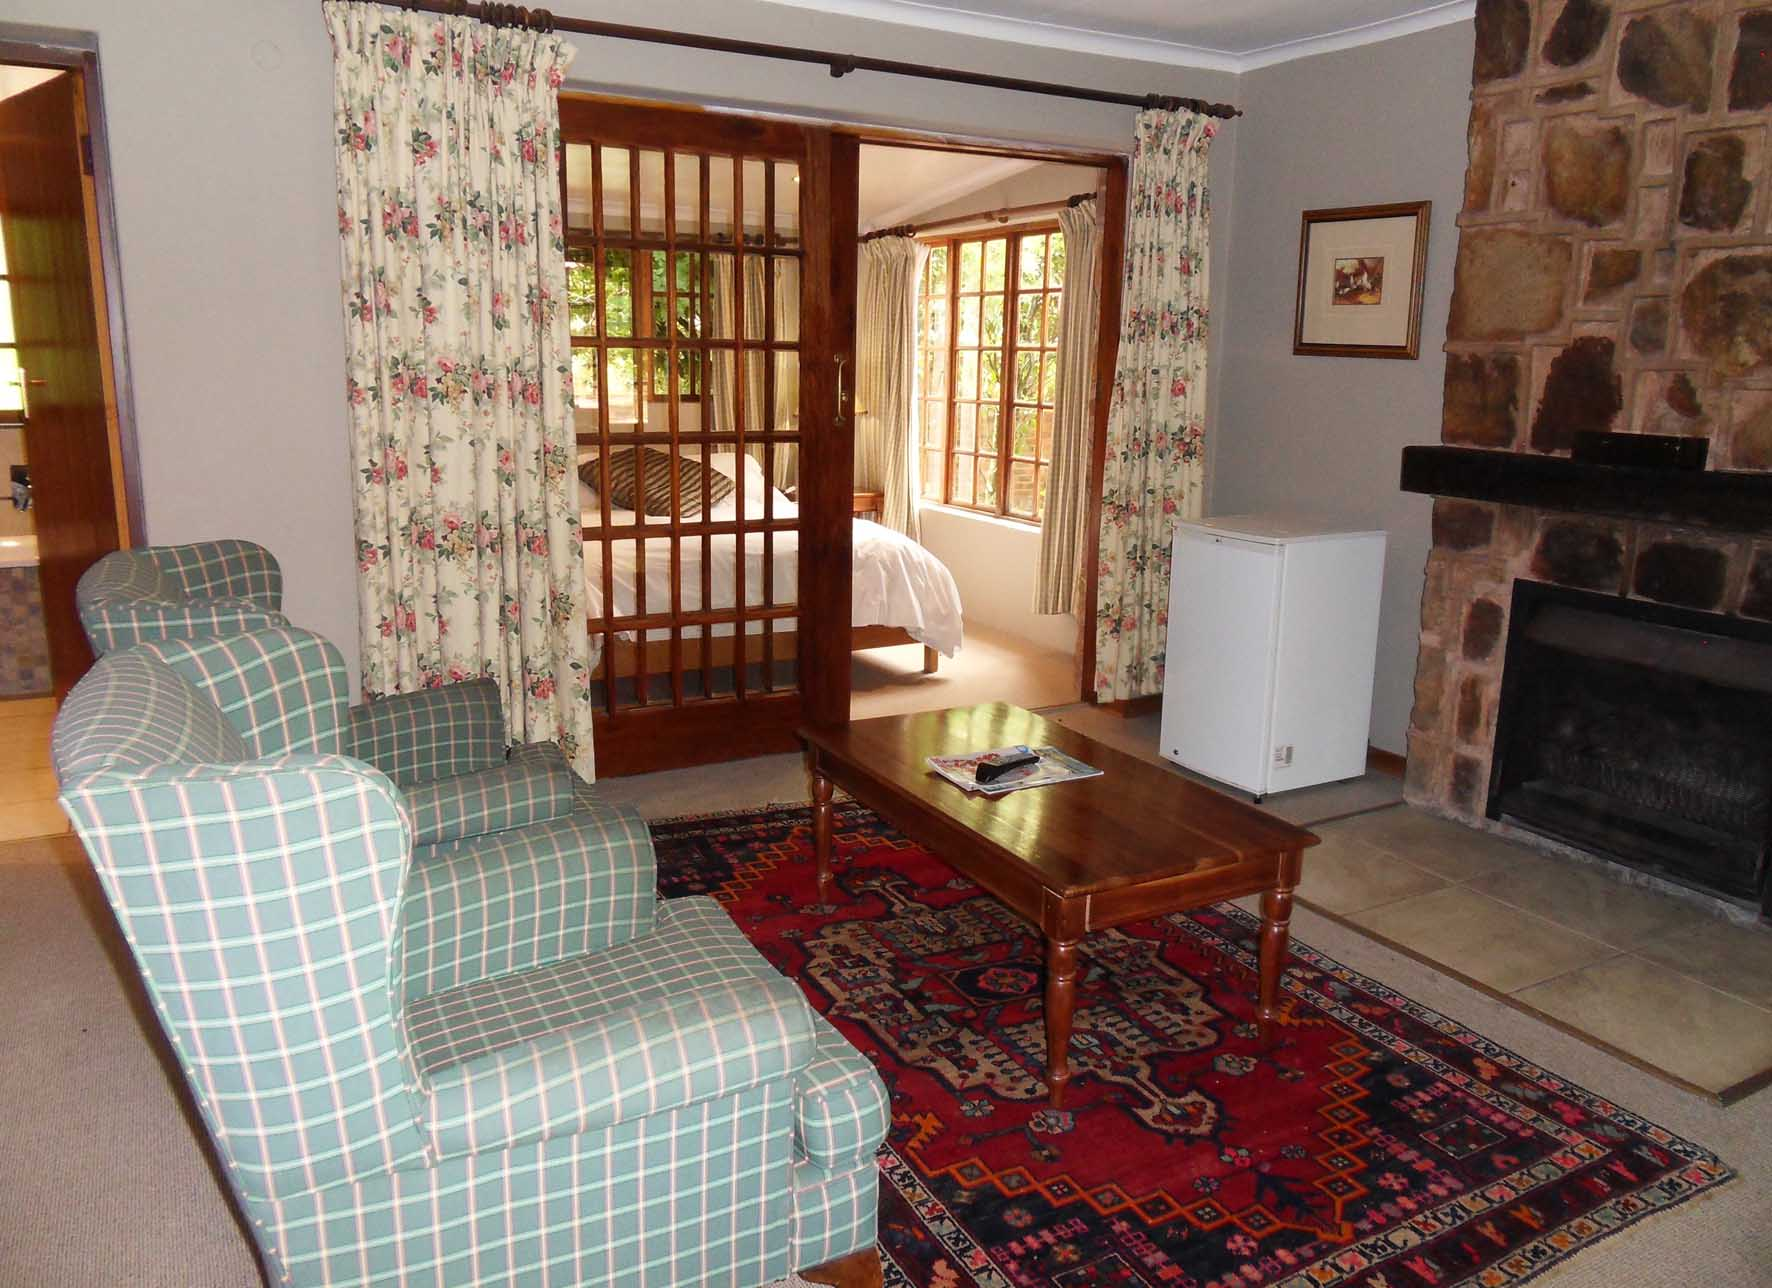 https://critchley.hotelian.co.za/wp-content/uploads/2016/05/Hotelian_Critchley_Hackle_Garden_Cottage_02.jpg